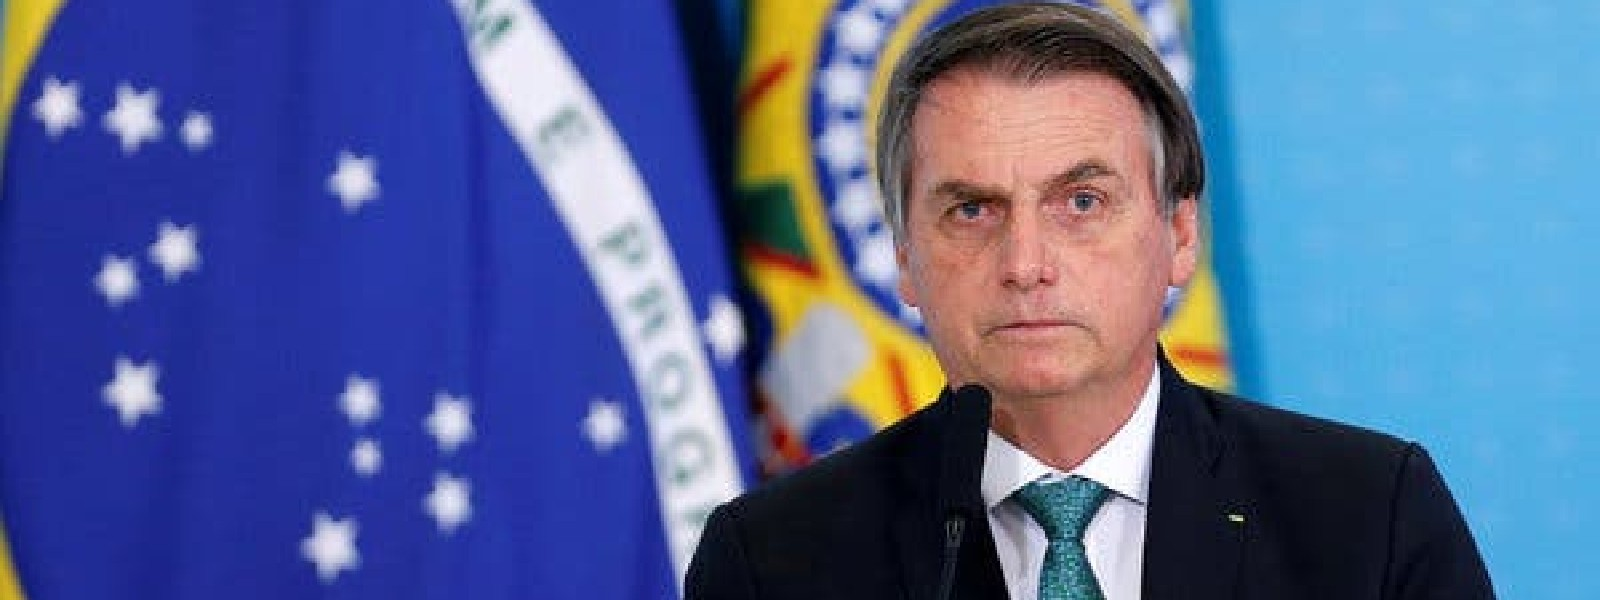 Is Brazils President guilty of Criminal Negligence over VACCINE disaster?